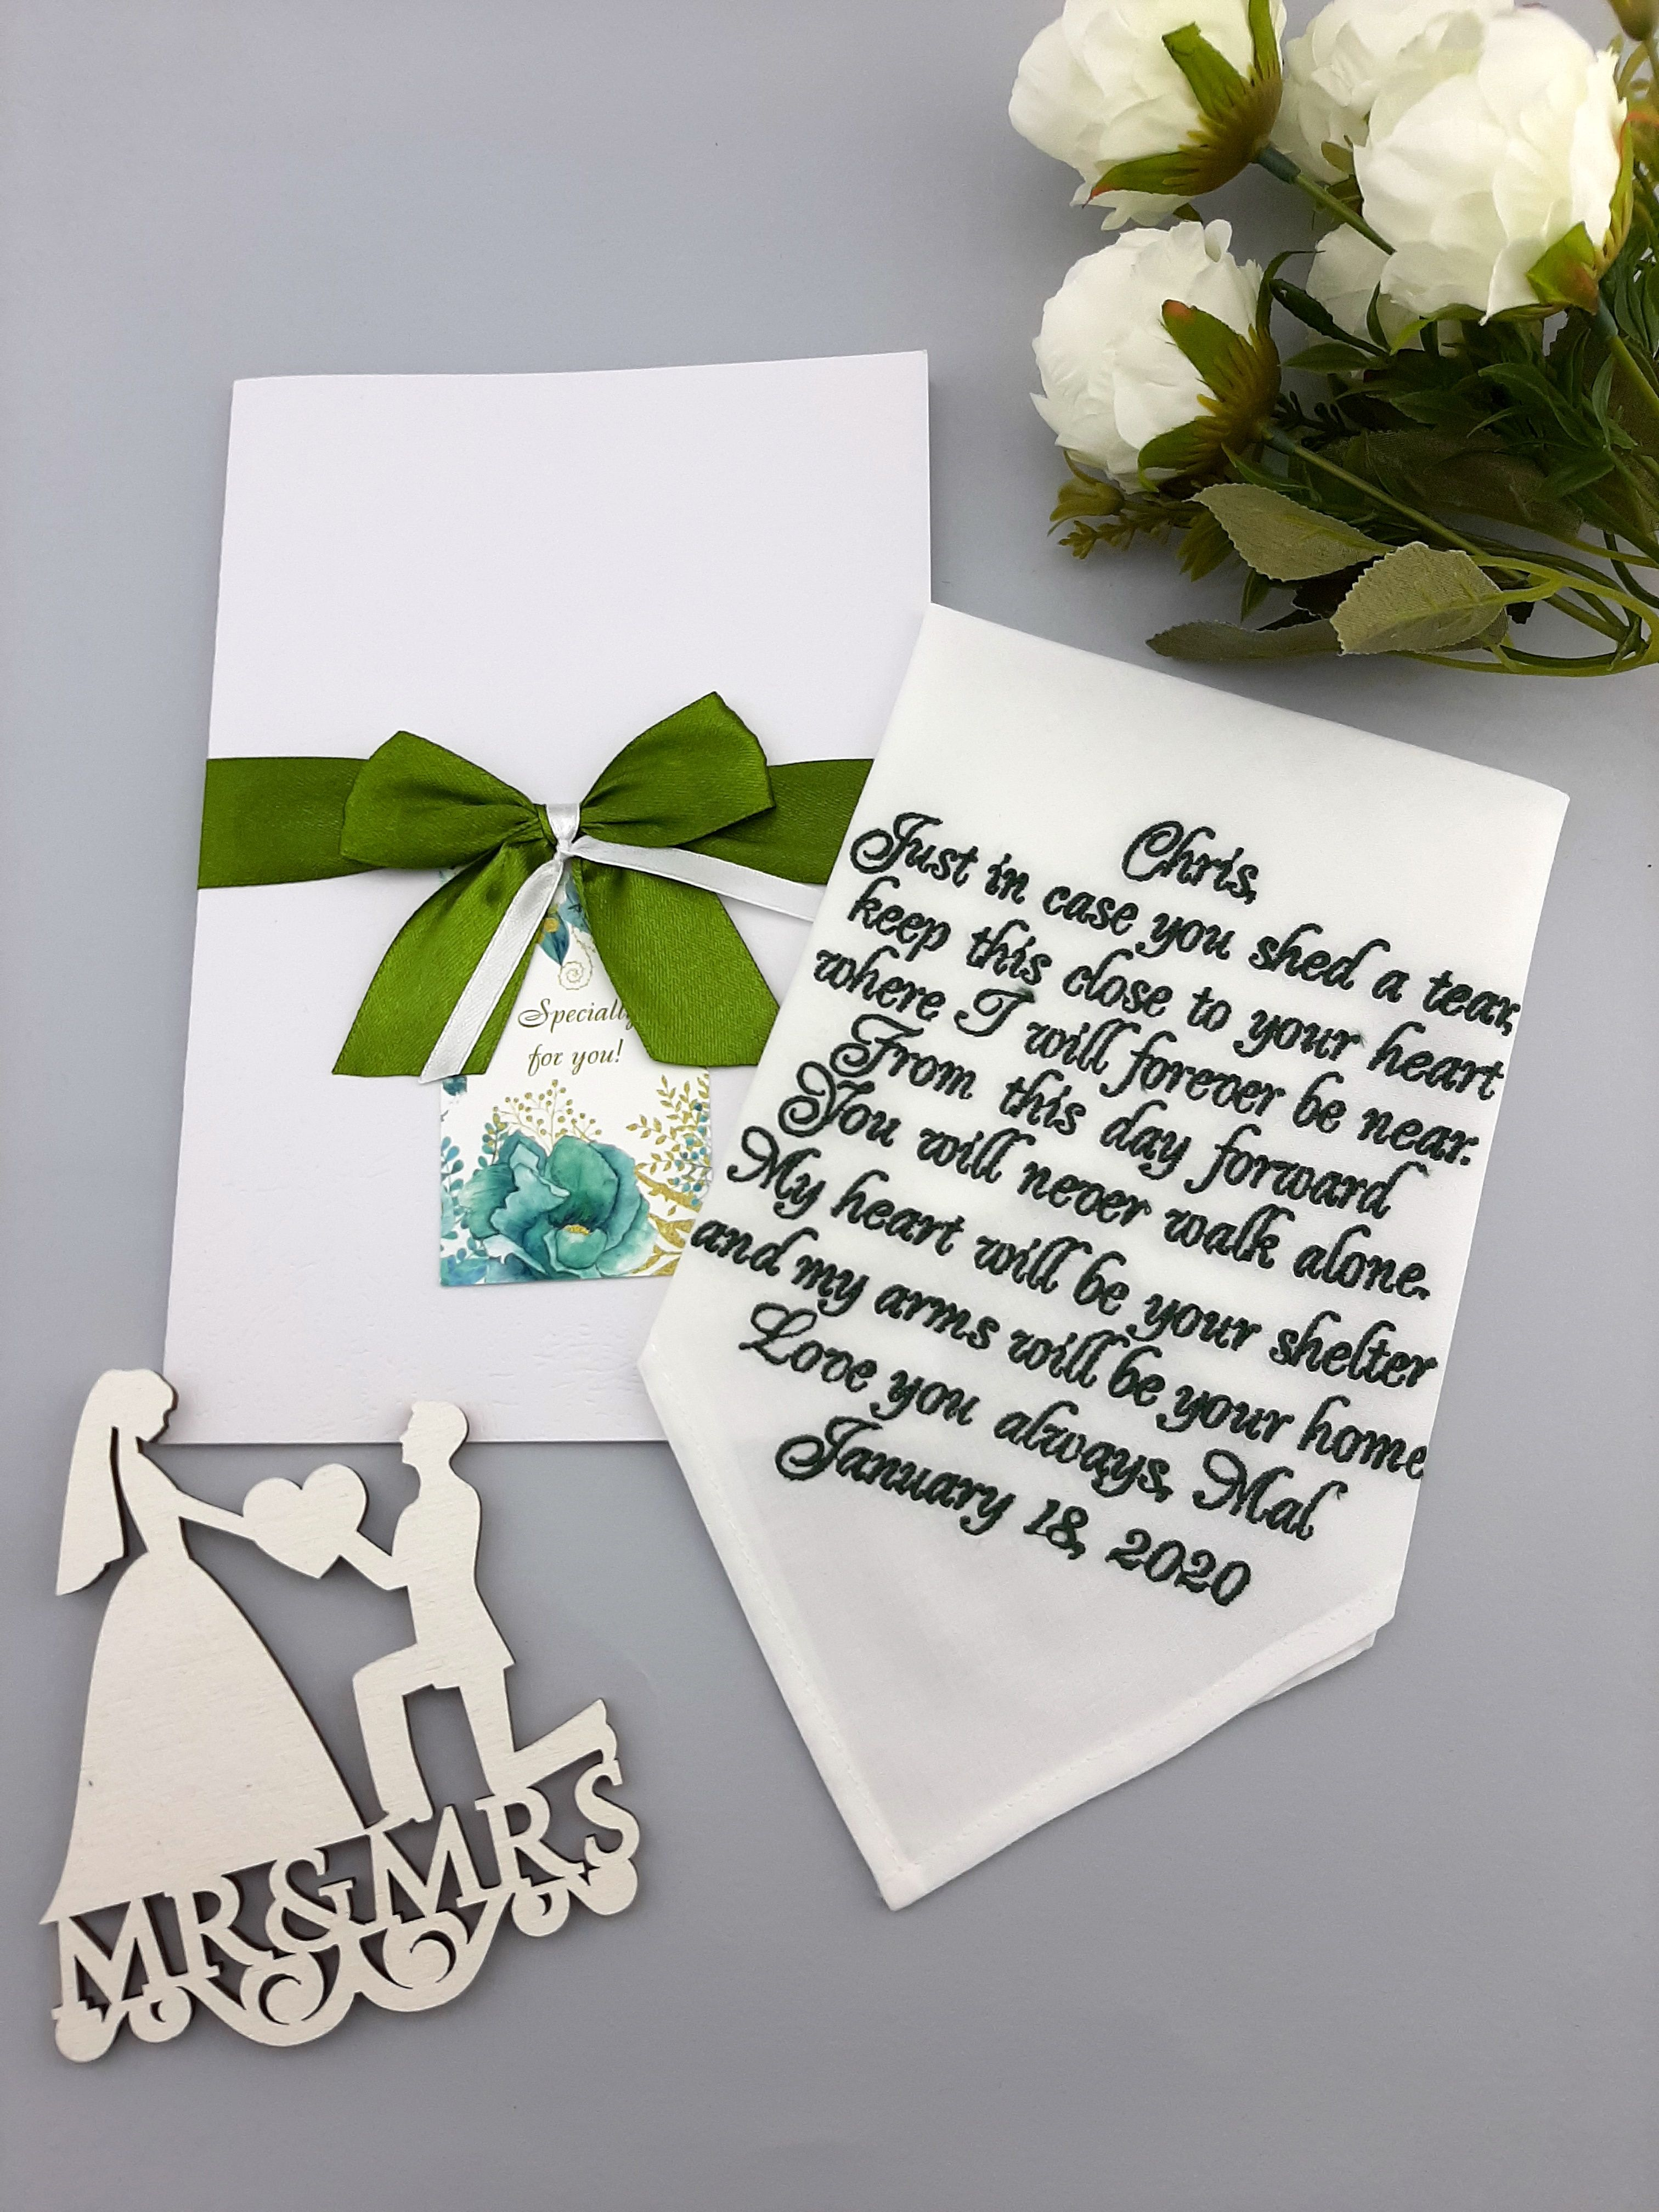 Groom Gifts From Bride Grooms Gift Handkerchief Wedding Gift Etsy In 2020 Wedding Gifts For Groom Handkerchief Wedding Gift Bride And Groom Gifts